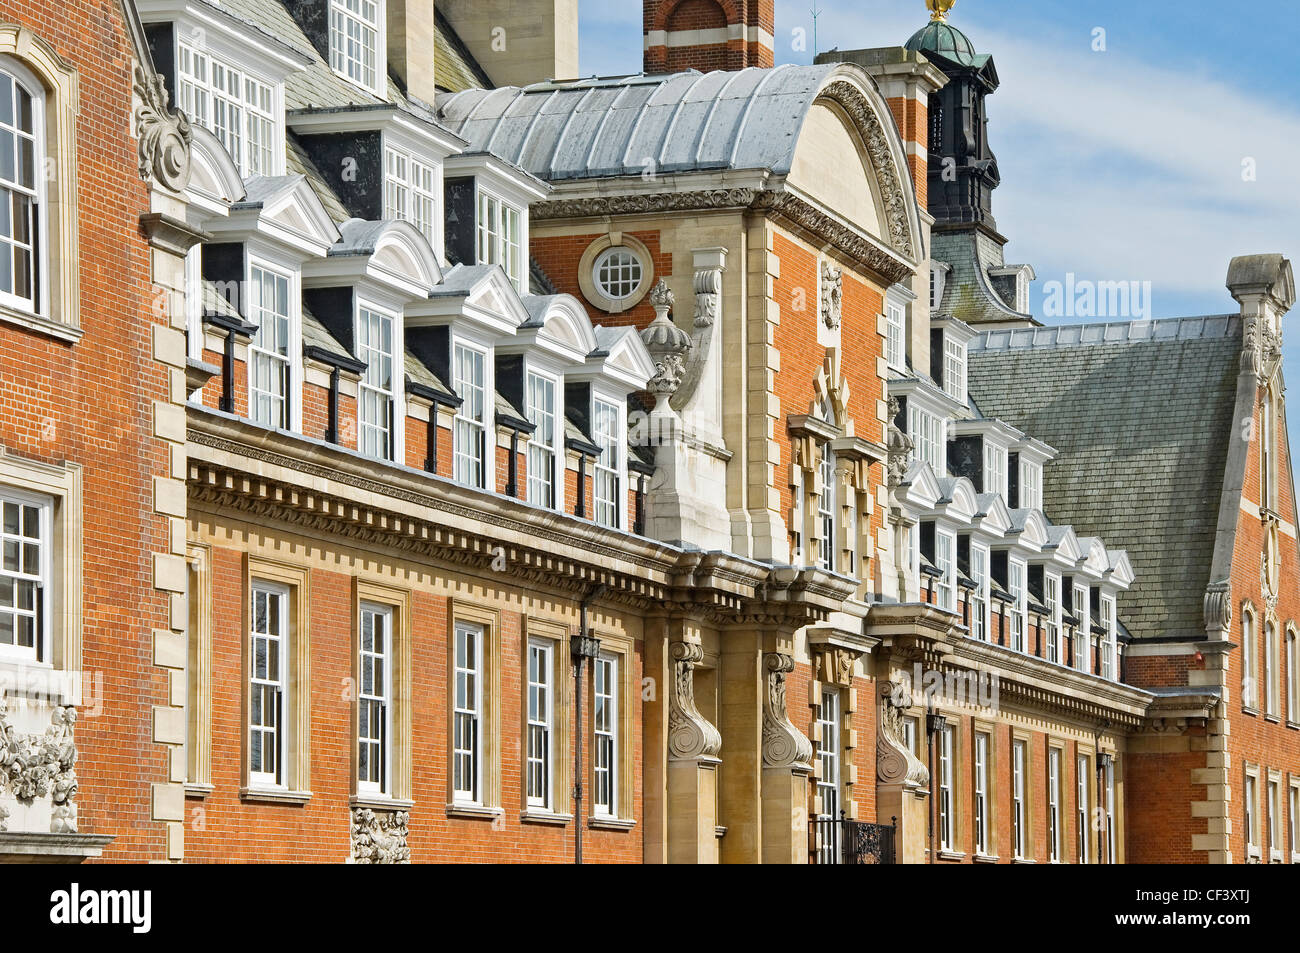 Cedar Court Grand Hotel & Spa (formerly NER then GNER Headquarters). - Stock Image